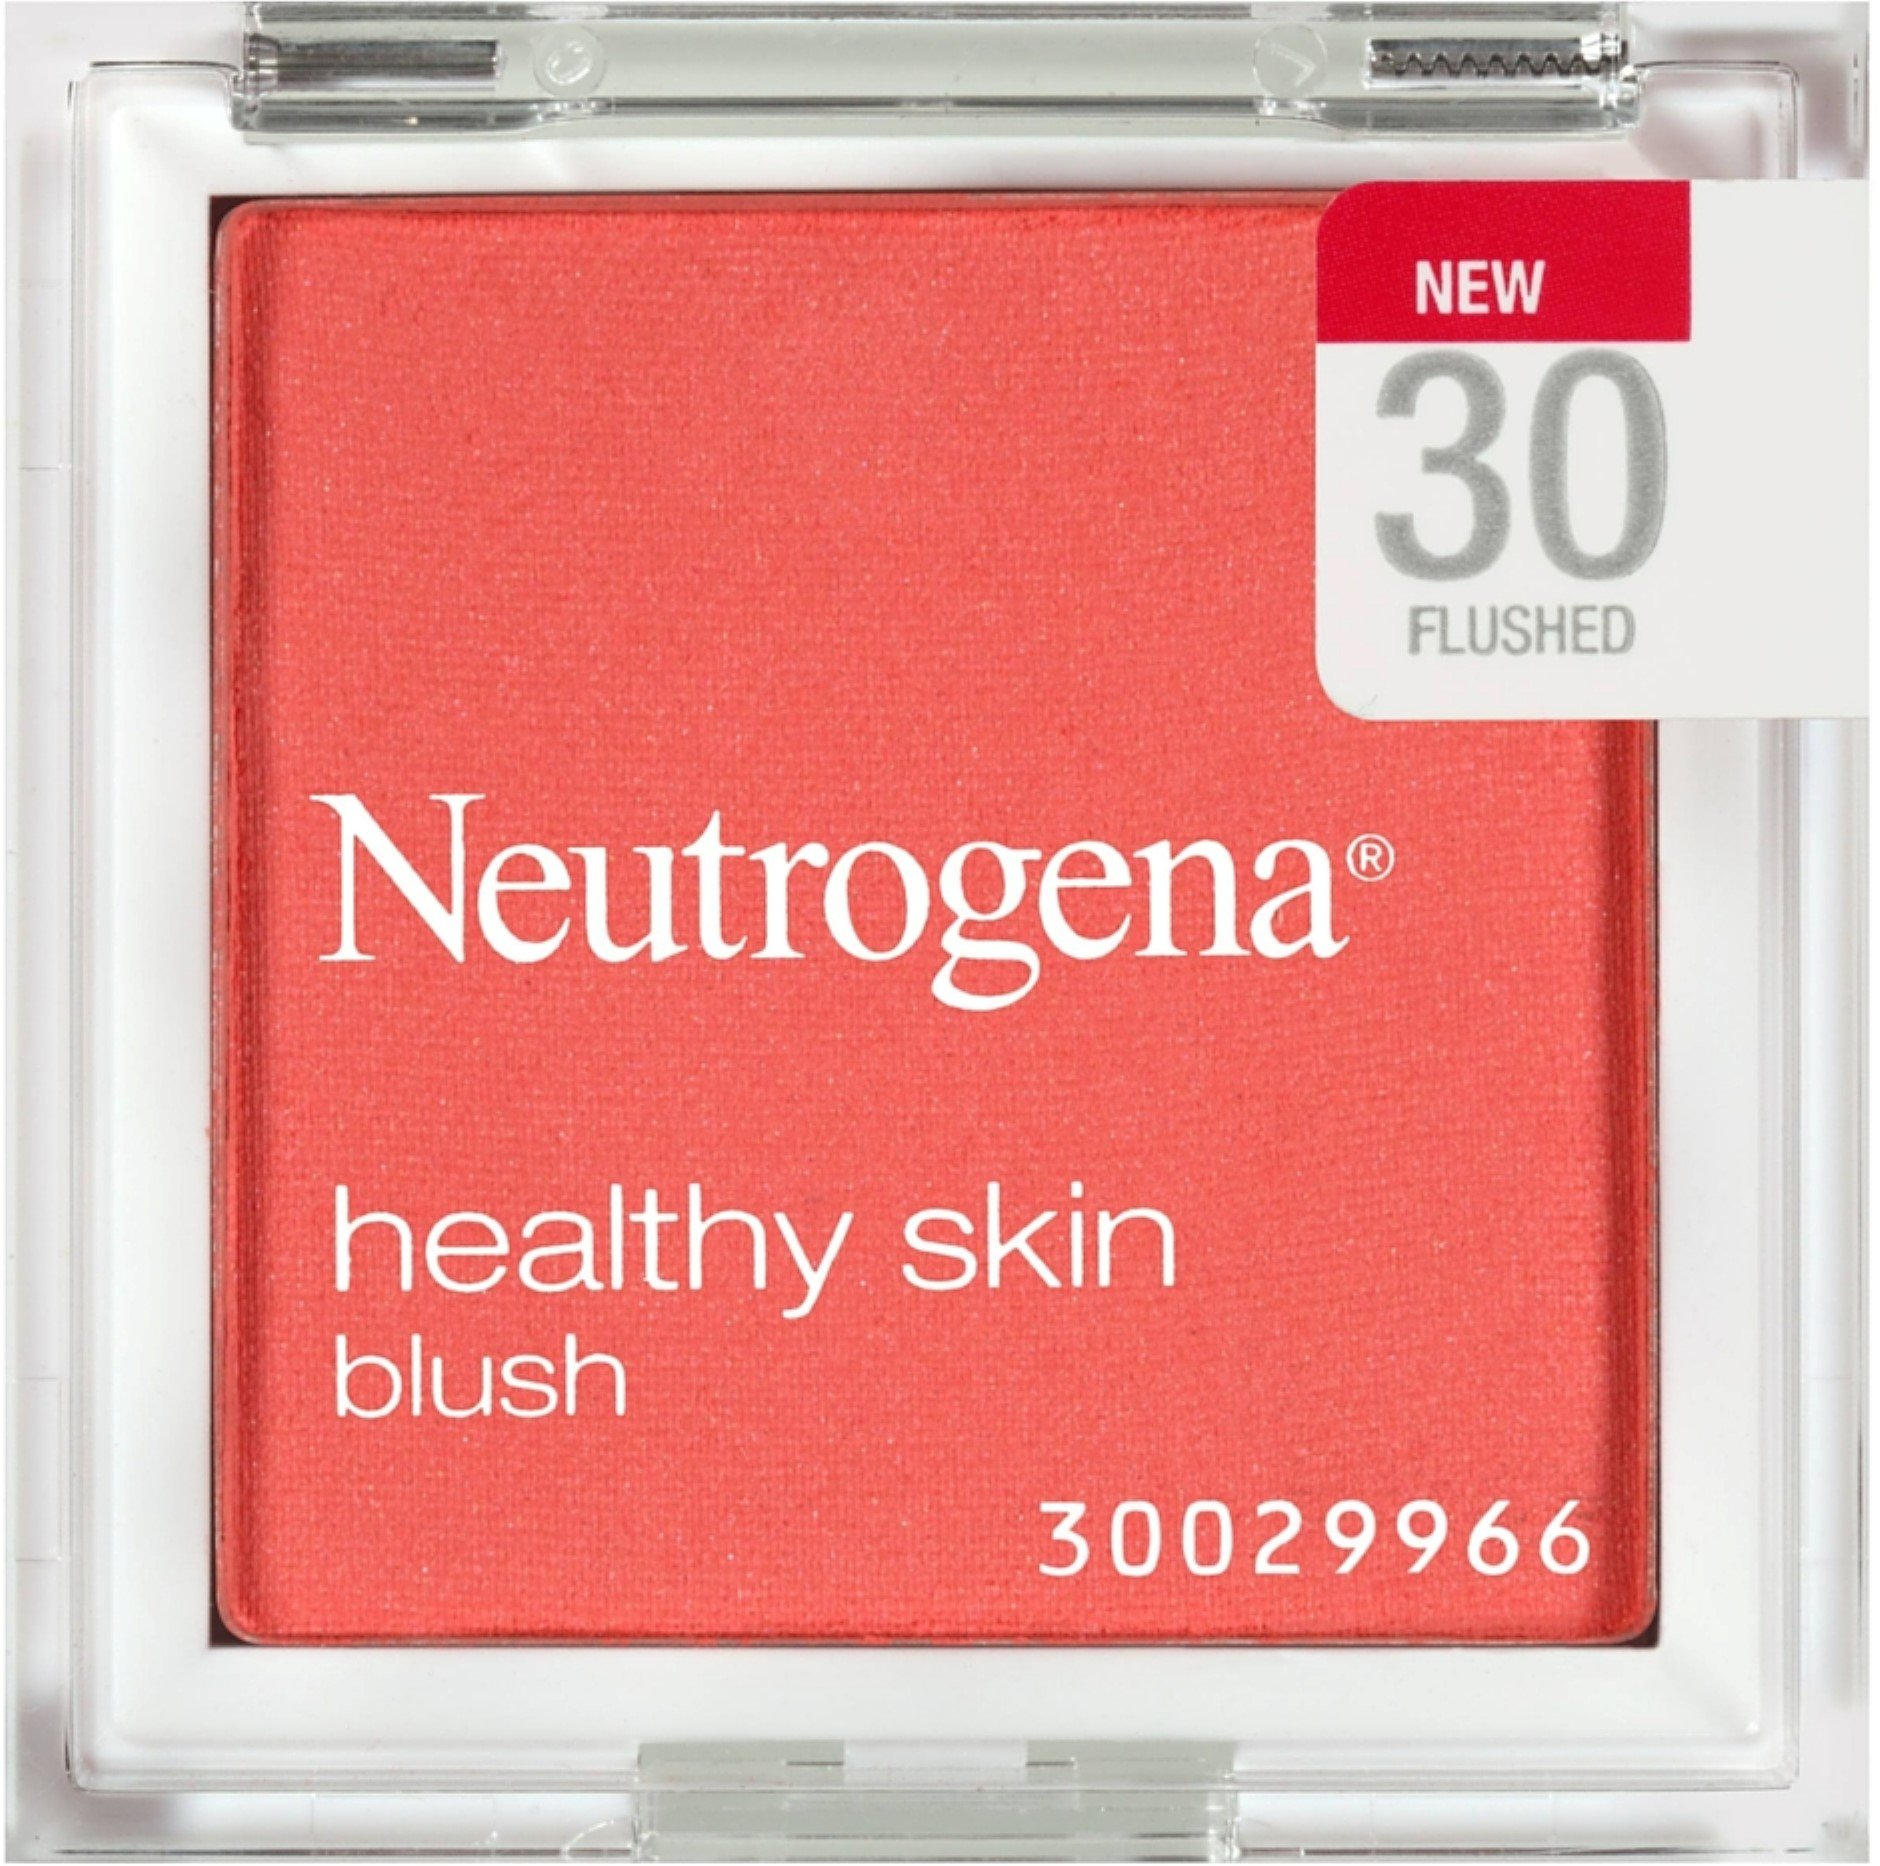 Neutrogena Healthy Skin Blush, Flushed [30] 0.19 oz (12 Pack)